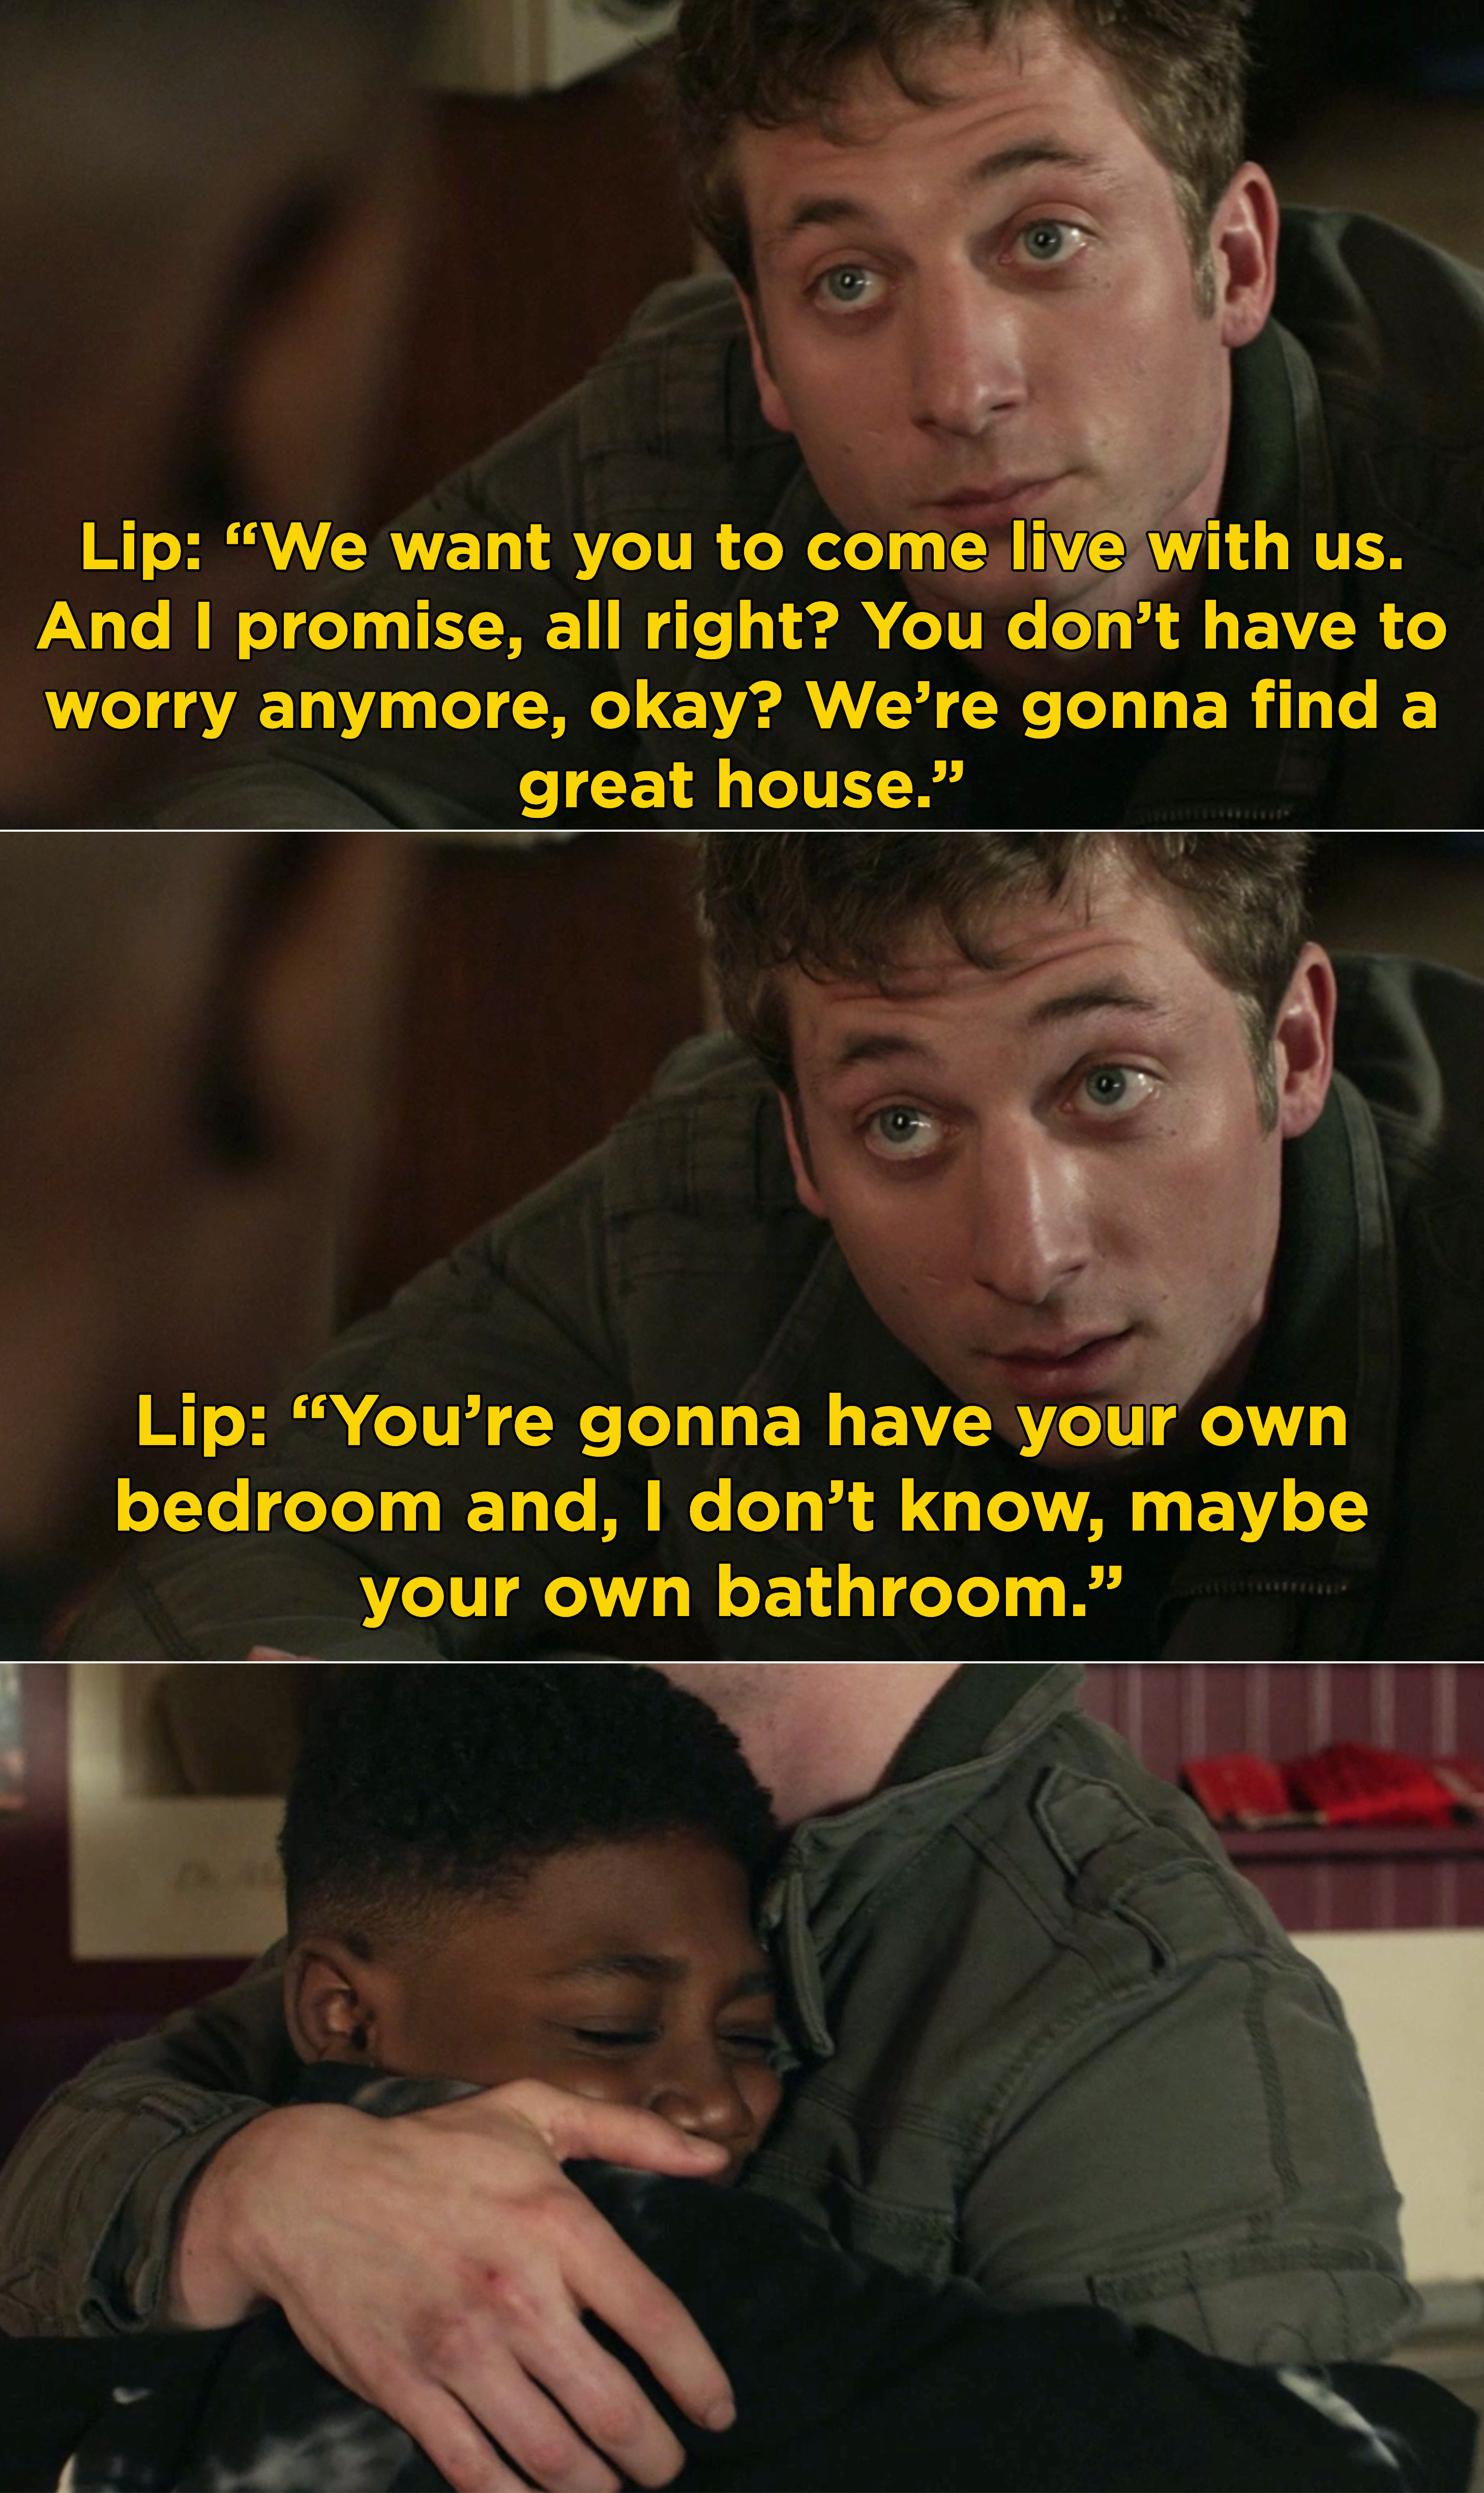 Lip explaining to Liam that he will have his own bedroom in their new house